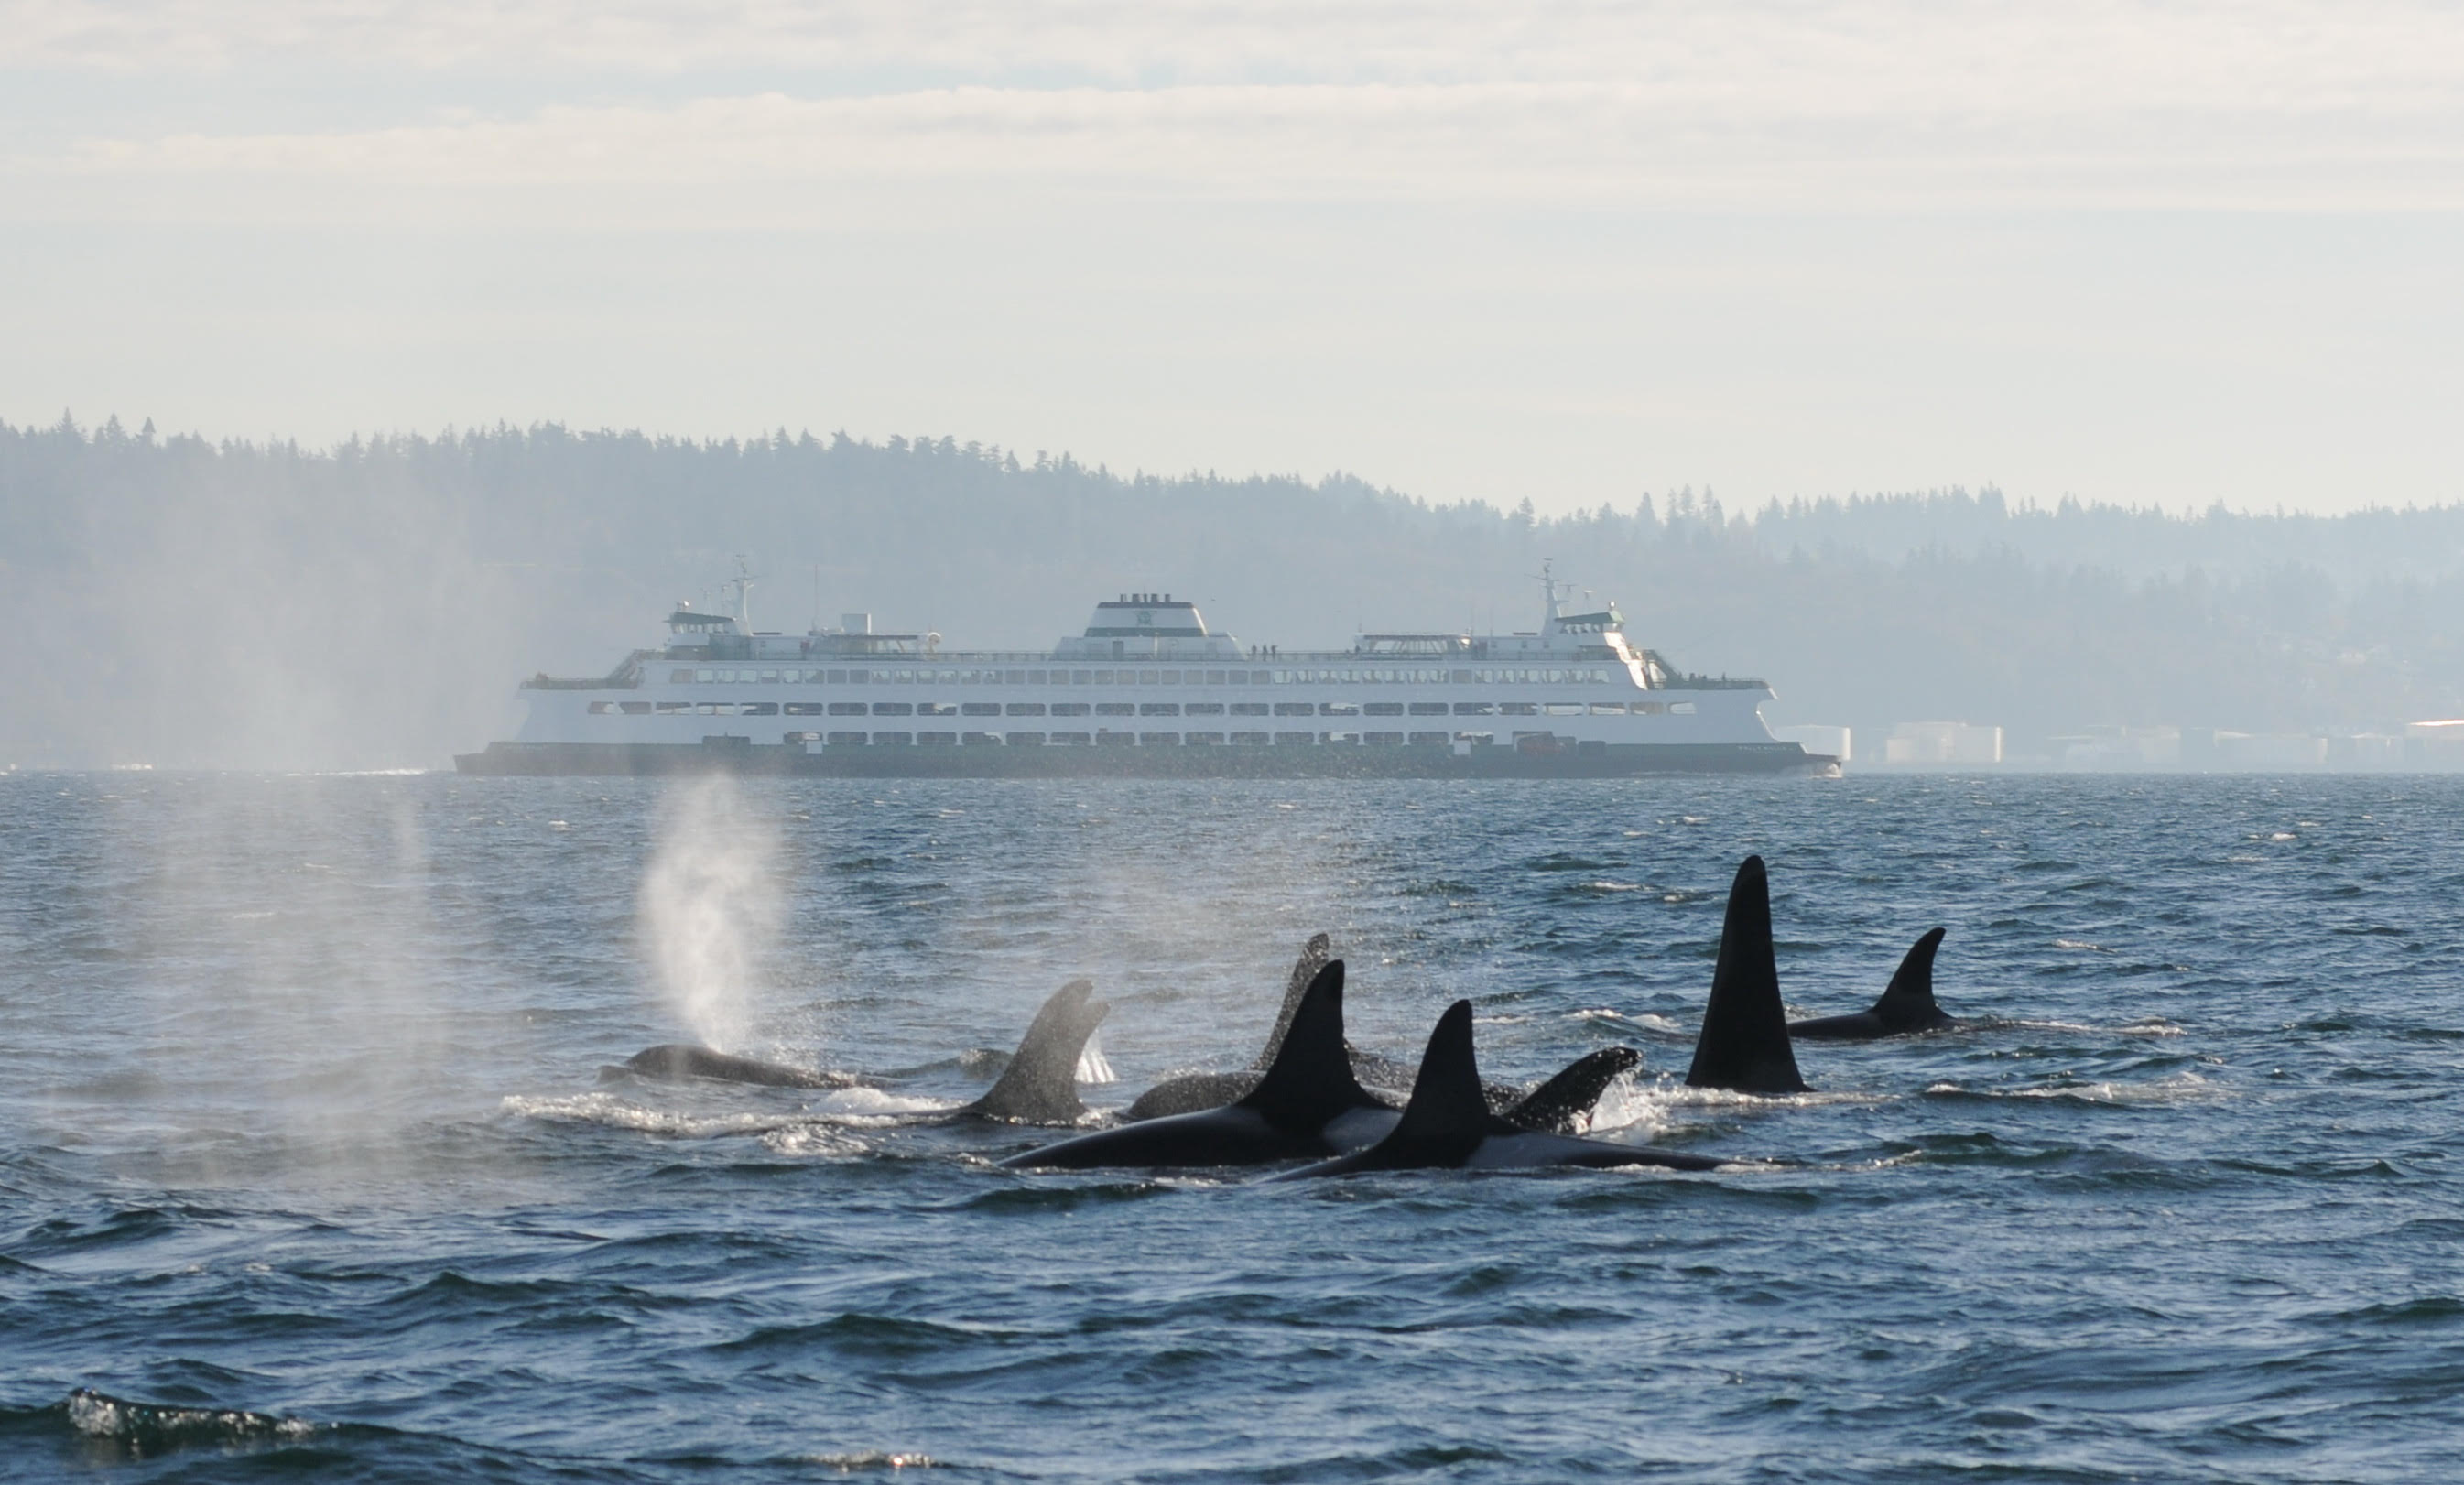 A pod of killer whales, an endangered species, swims near Seattle. By using eDNA from seawater samples, marine biologists can often detect rare species like the killer whale without seeing them. Credit:C. Emmons, NOAA Fisheries